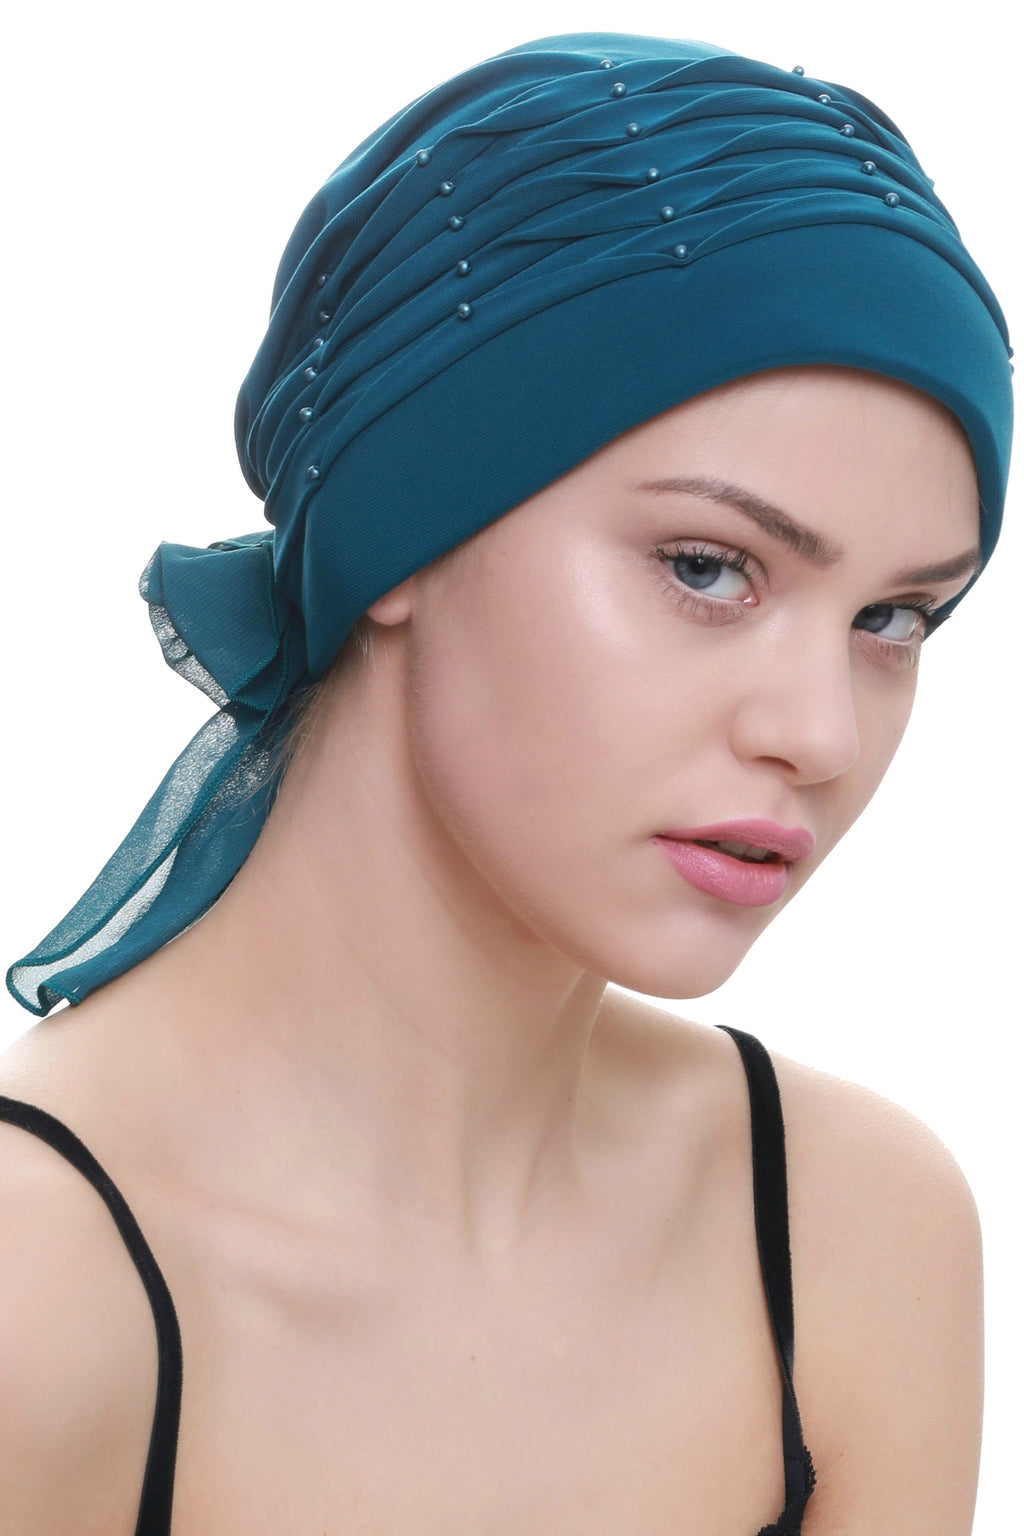 Deresina Twisted pleated cancer headwear teal